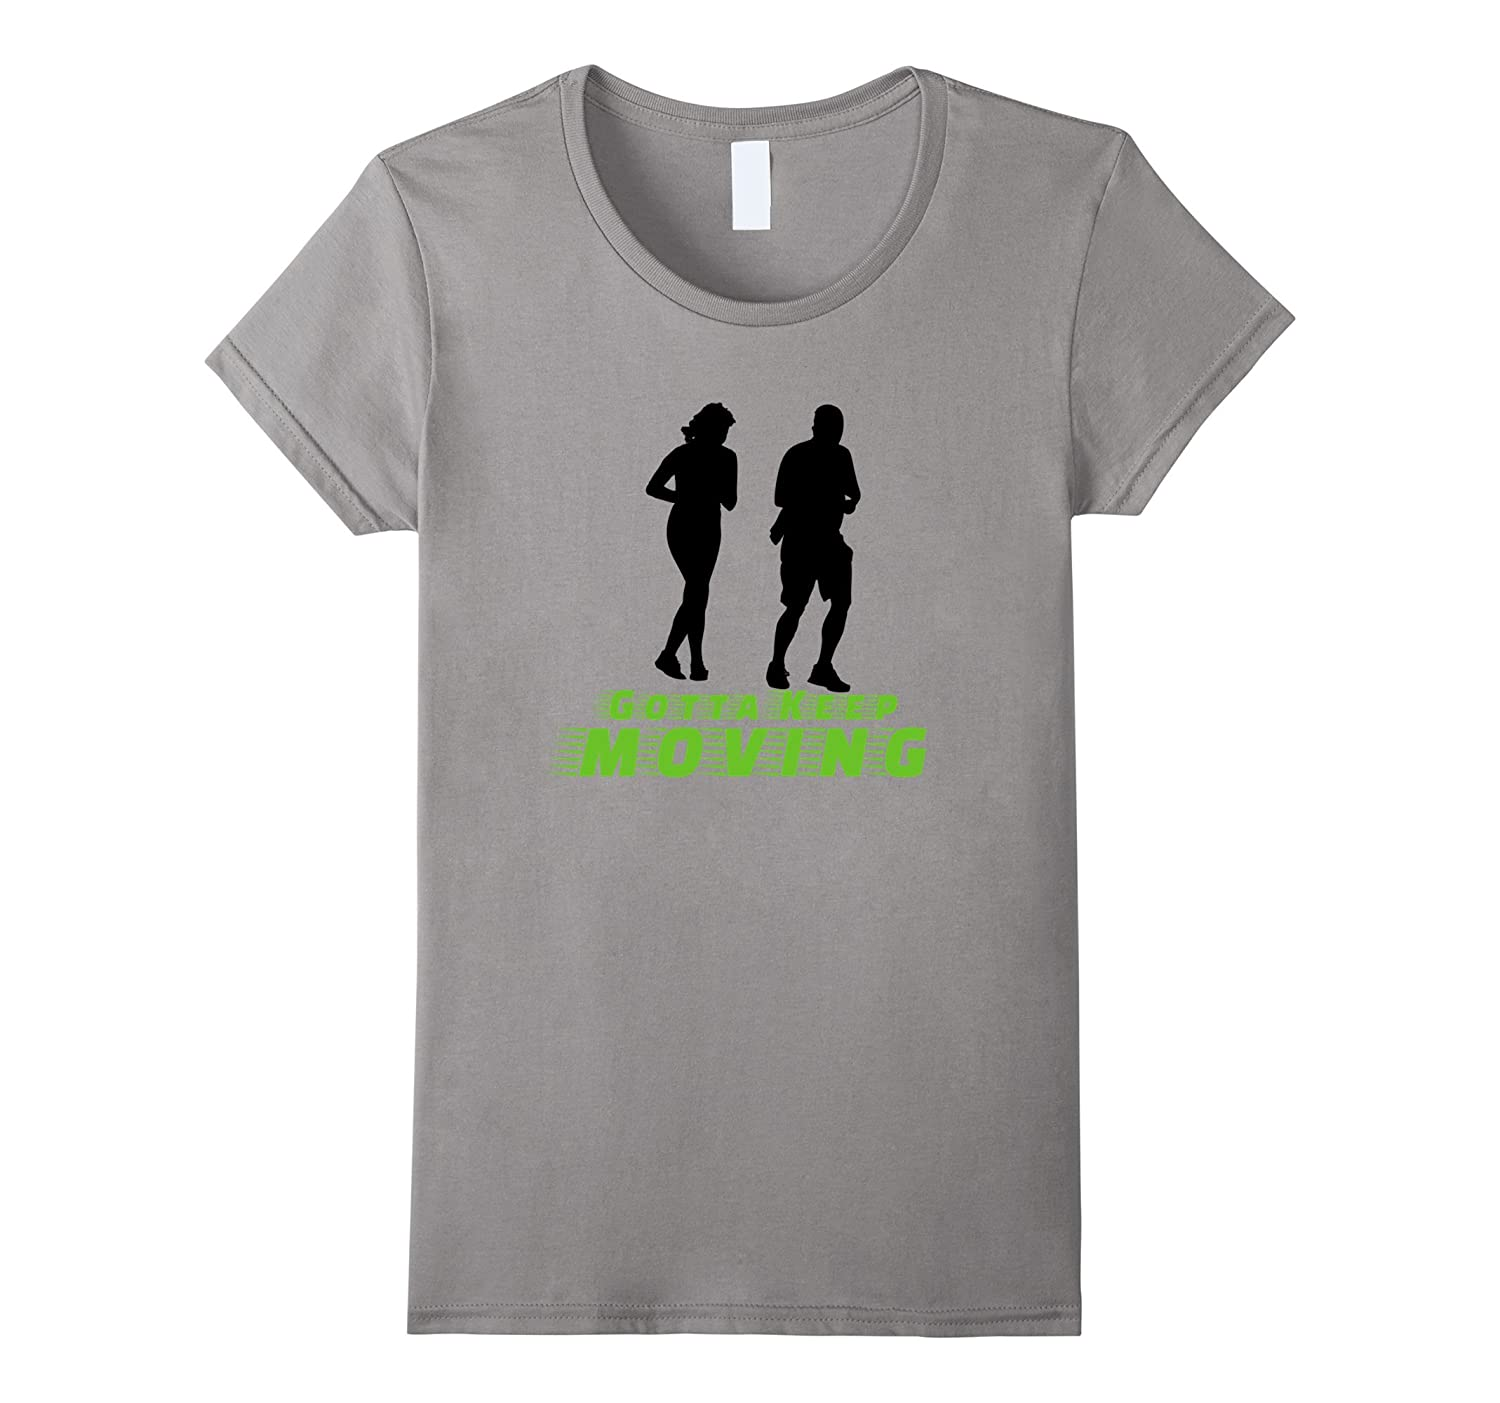 Gotta Keep Moving Shirt Rehab Exercise Healthy Man Woman